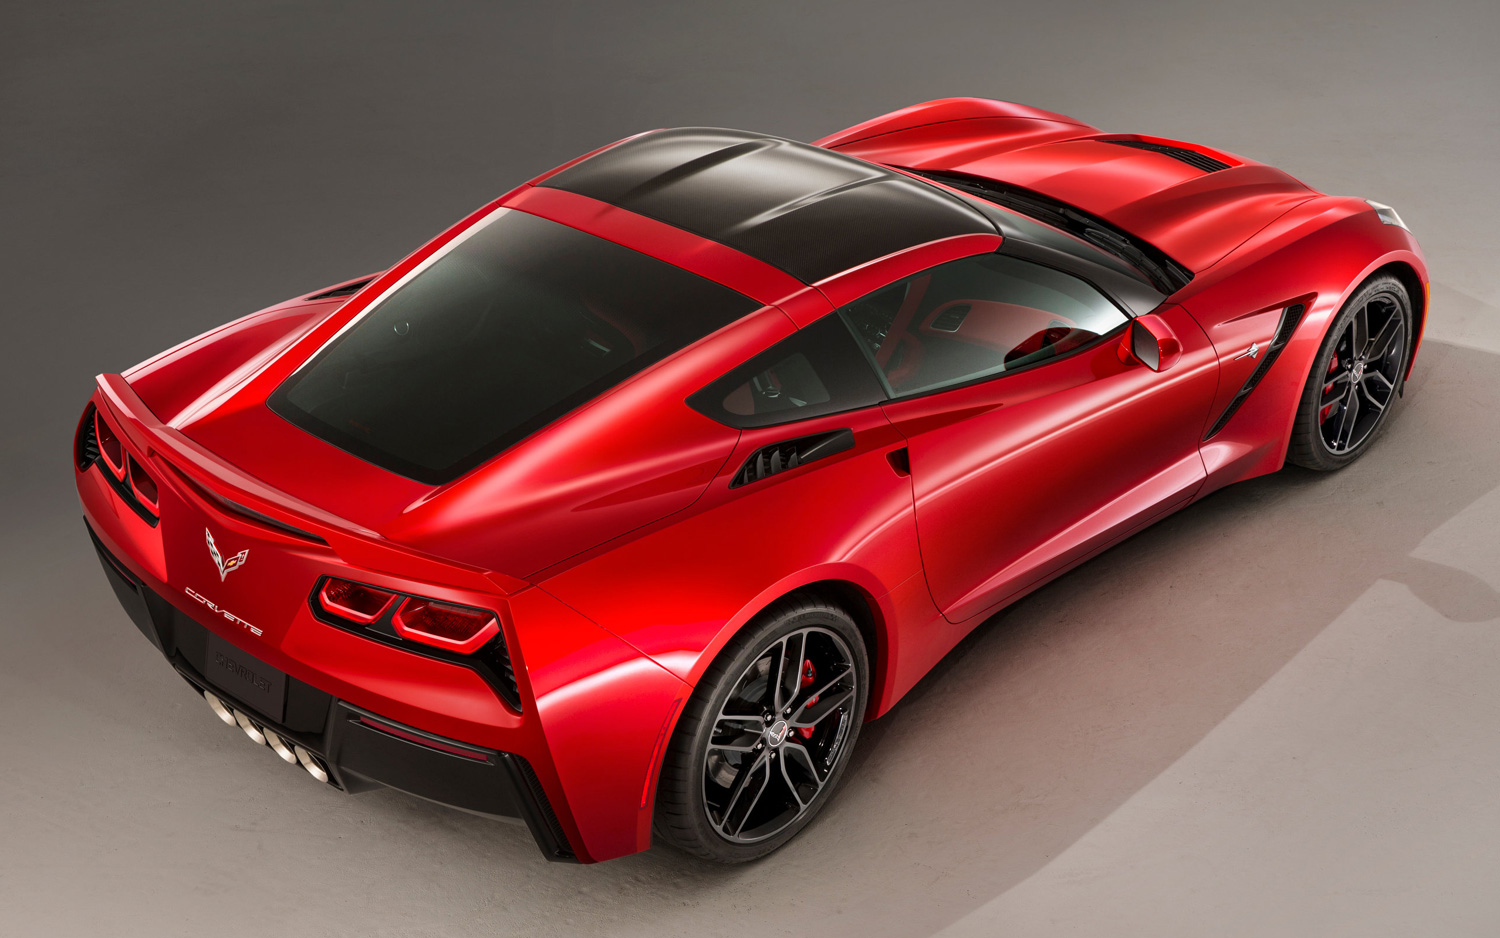 2014-chevrolet-corvette-stingray-in-red-top-down-view